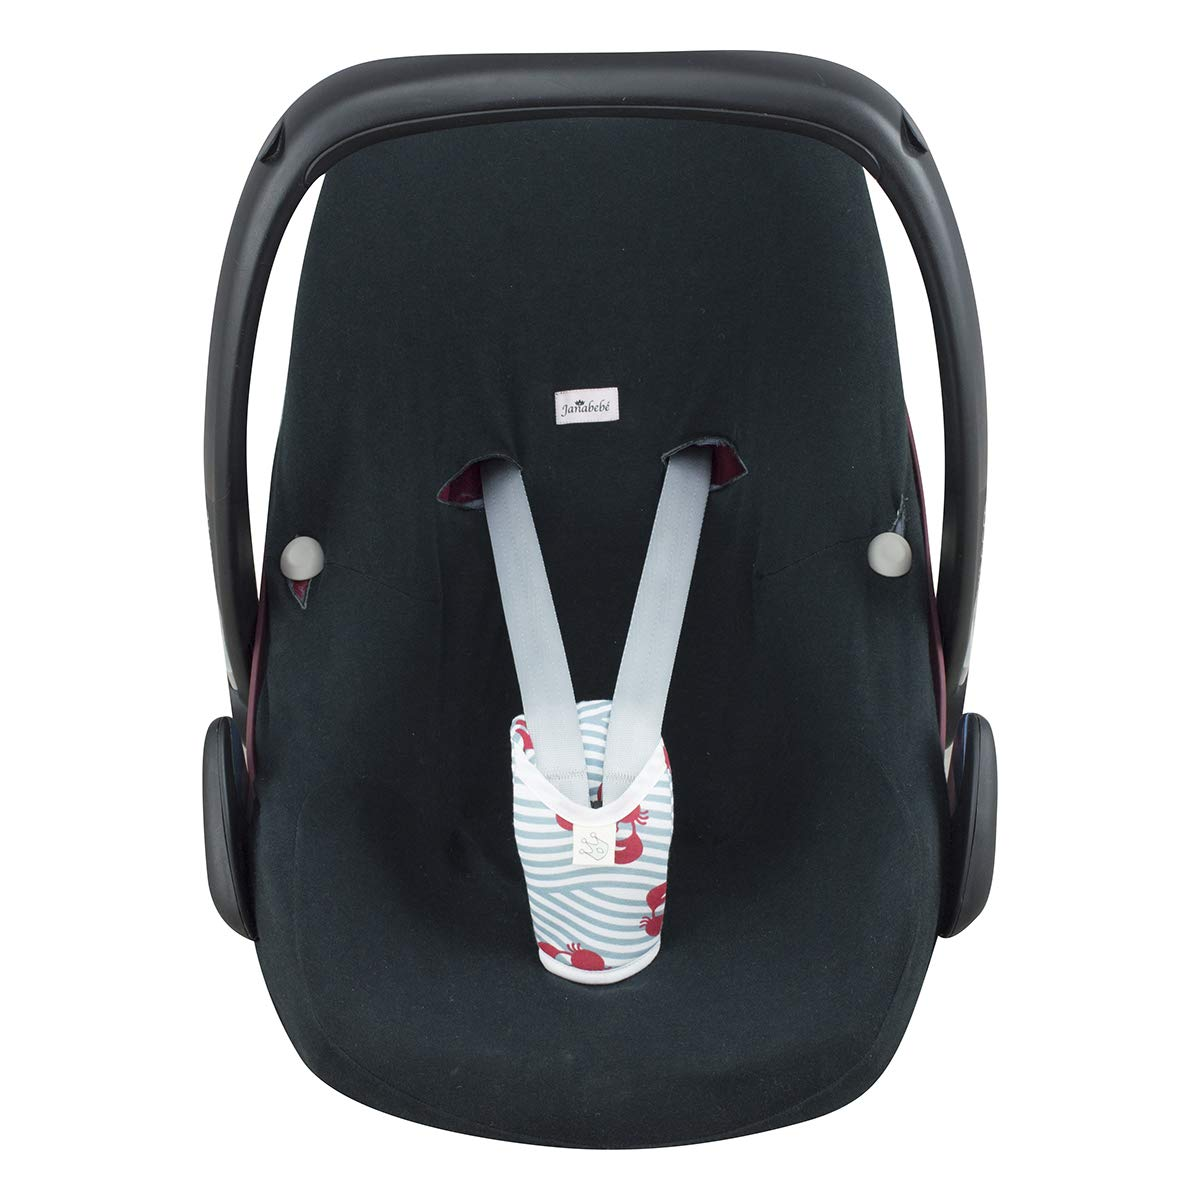 Janabebe Baby Crotch Protector and Stroller Black Rayo